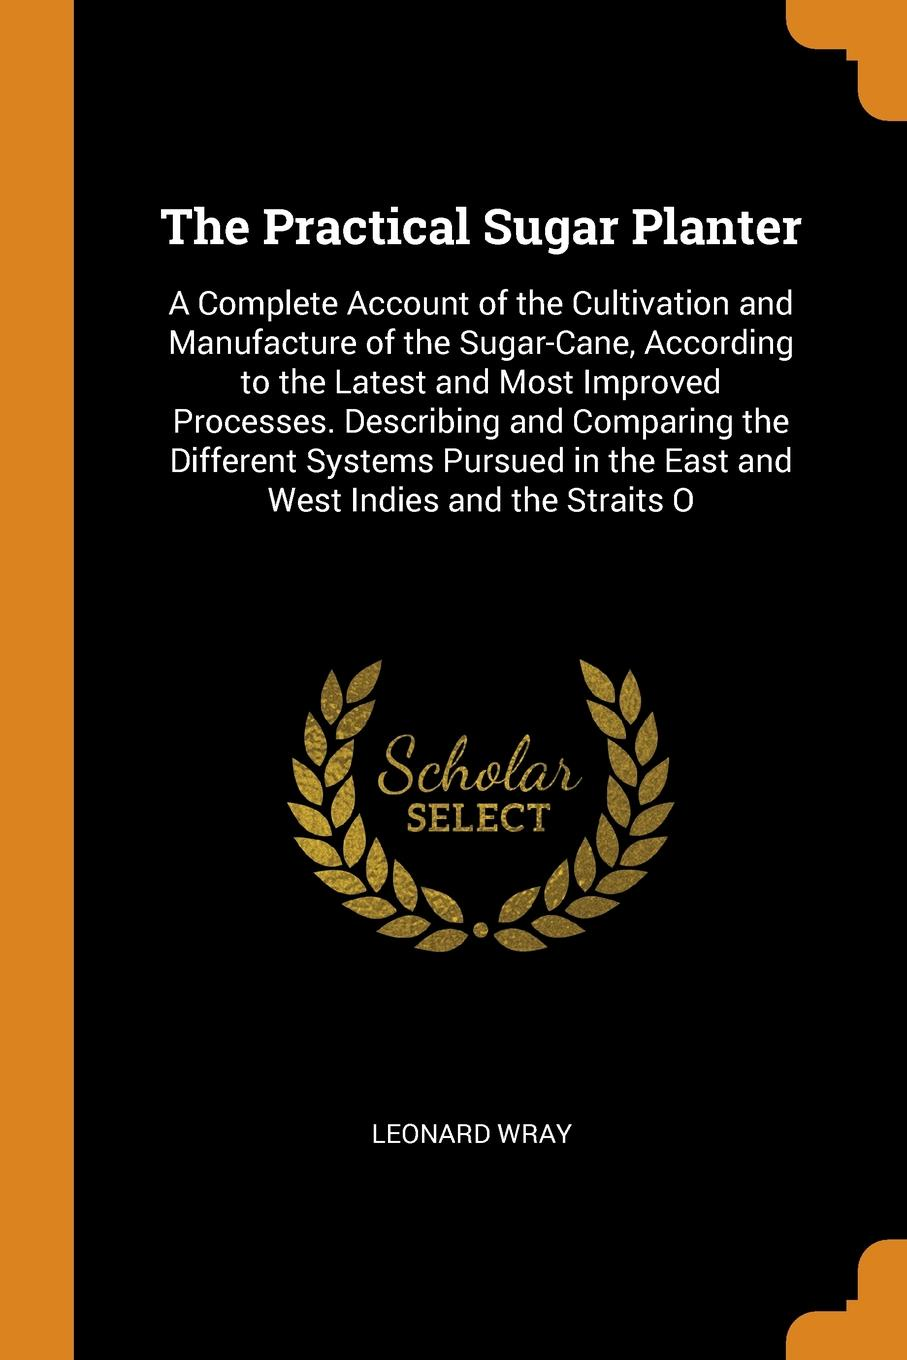 "The Practical Sugar Planter. A Complete Account of the Cultivation and Manufacture of the Sugar-Cane, According to the Latest and Most Improved Processes. Describing and Comparing the Different Systems Pursued in the East and West Indies and the S... Книга""The Practical Sugar Planter. A Complete Account of..."